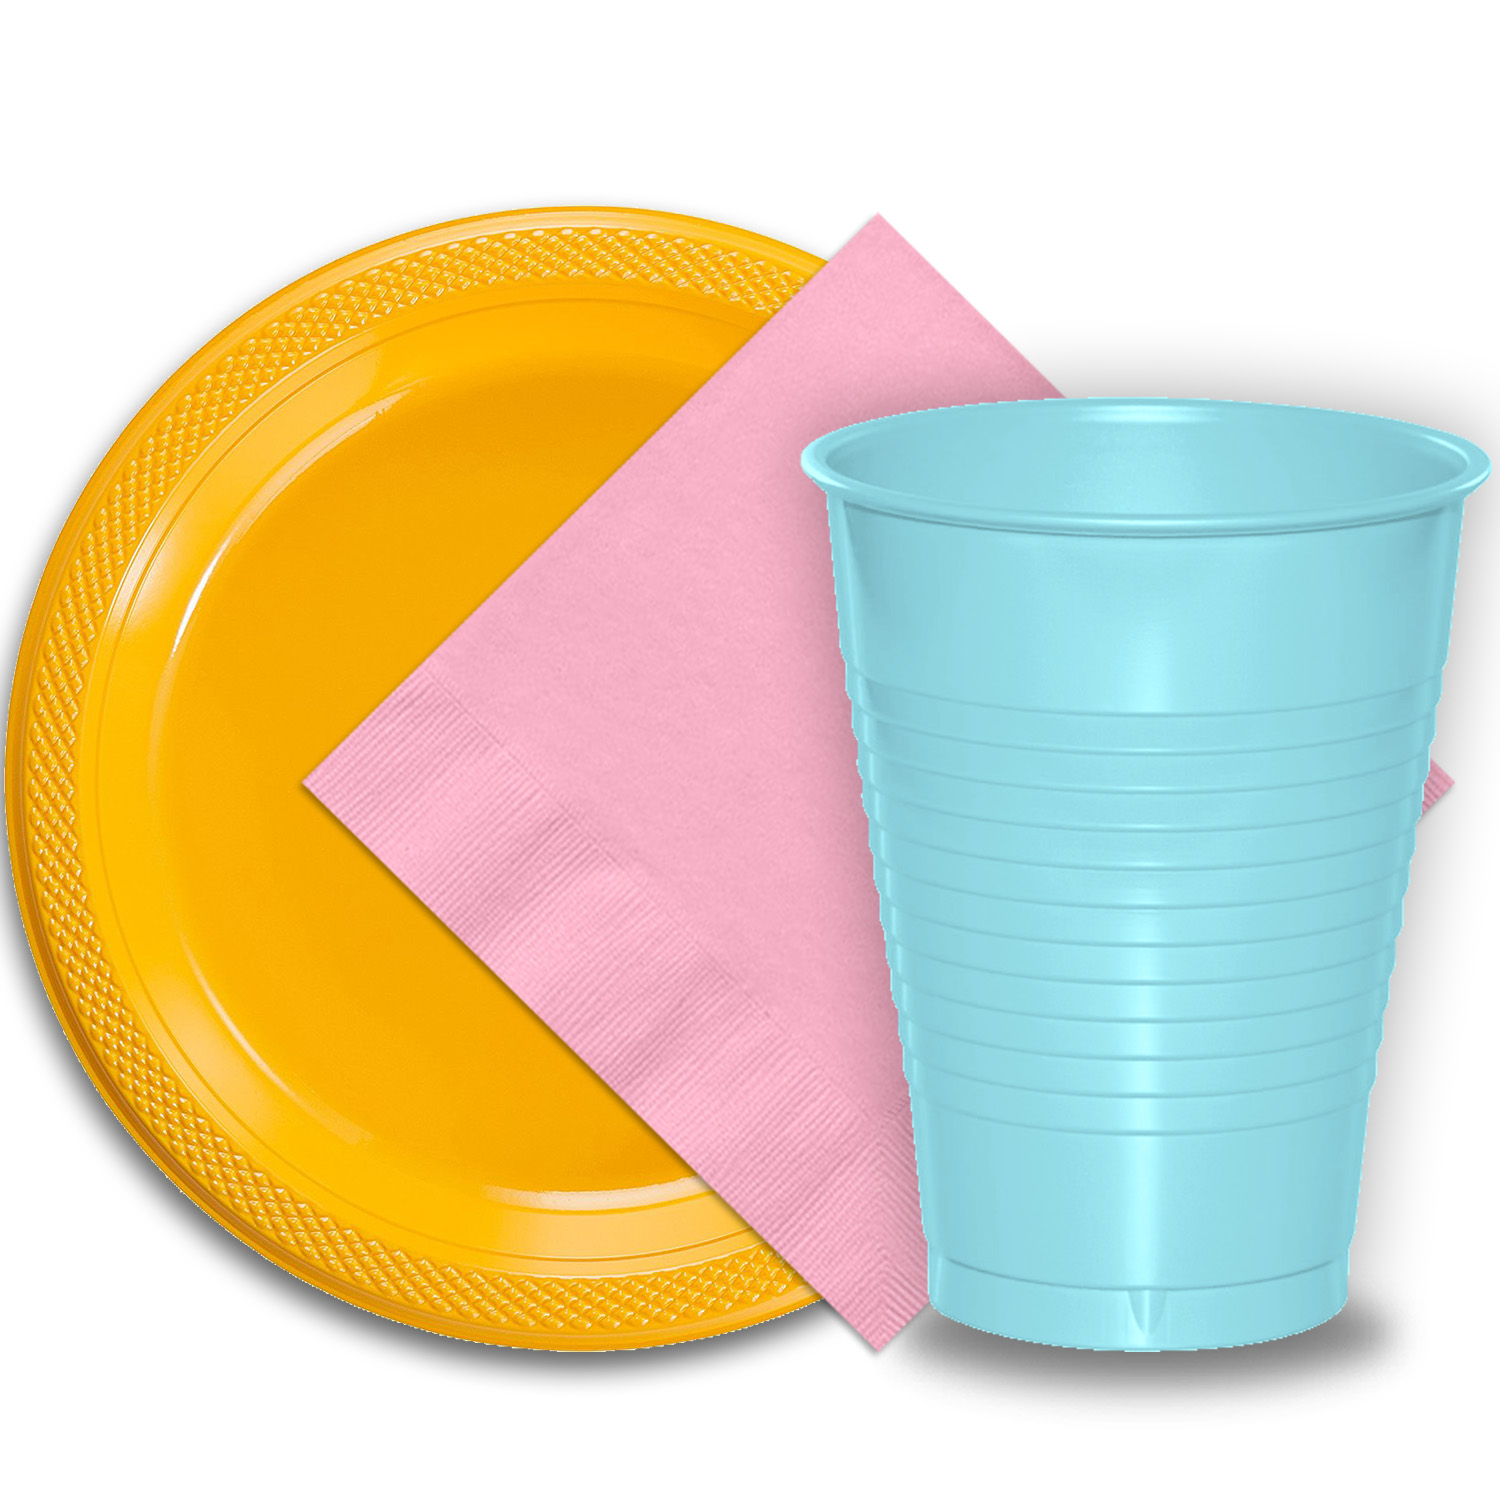 "50 Yellow Plastic Plates (9""), 50 Light Blue Plastic Cups (12 oz.), and 50 Pink Paper Napkins, Dazzelling Colored Disposable Party Supplies Tableware Set for Fifty Guests."